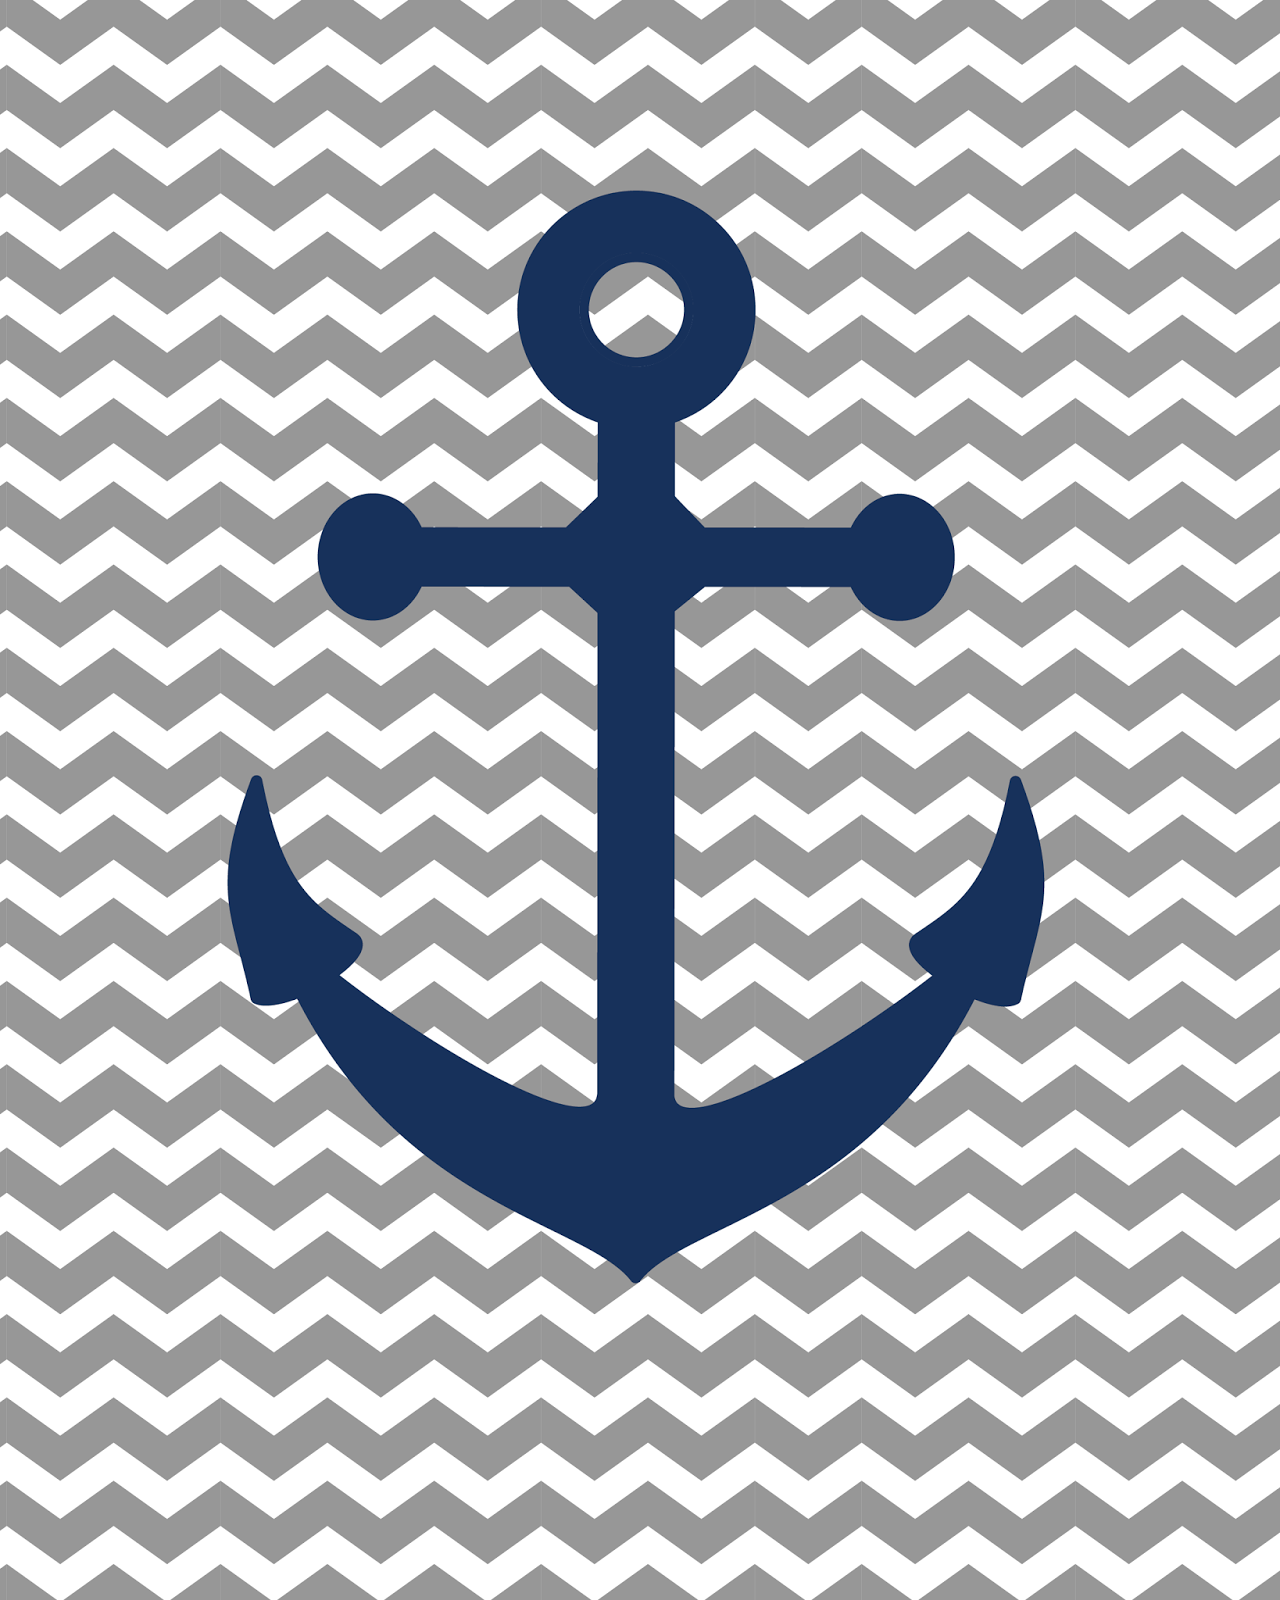 Free Anchor Wallpaper